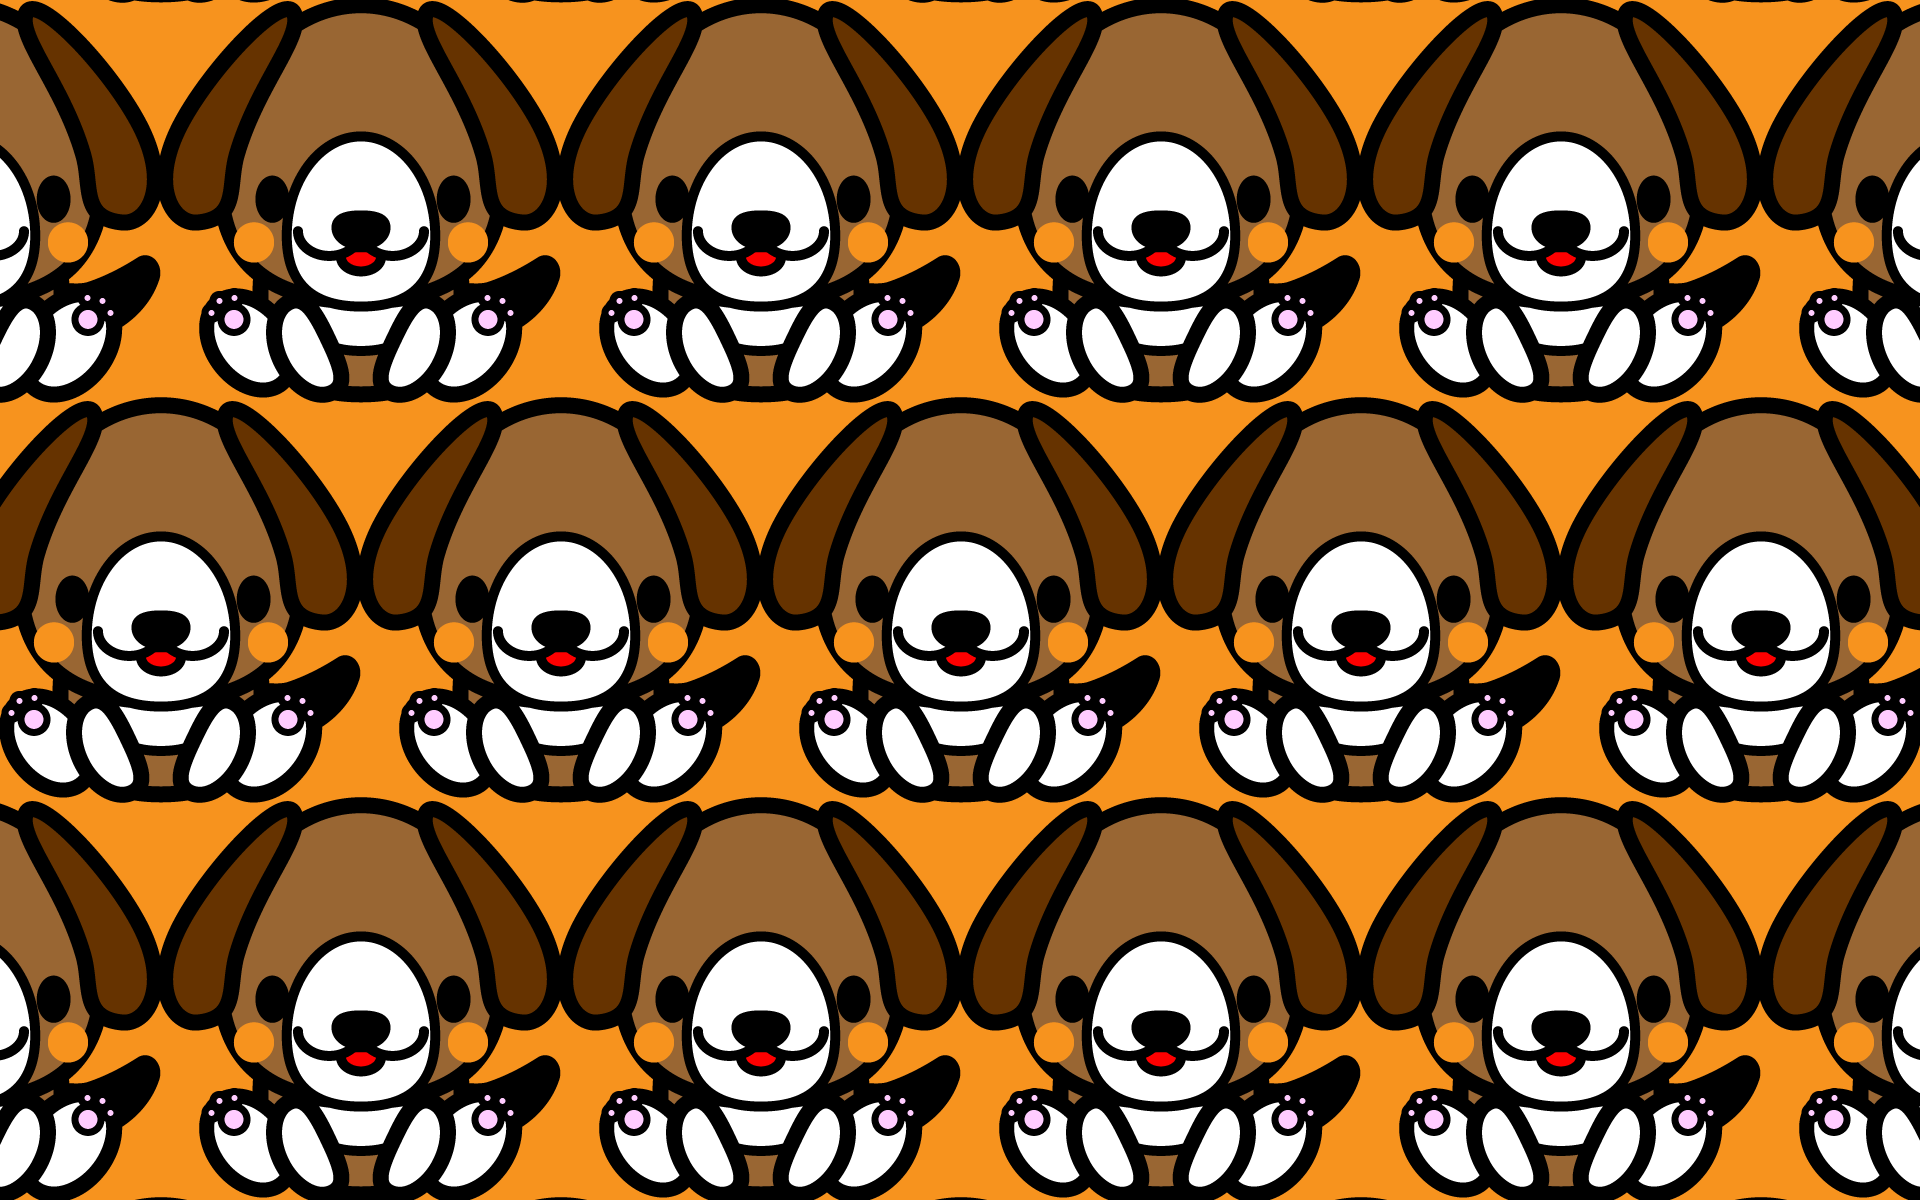 wallpaper4_sitbeagle-dog-fiill-orange-pc